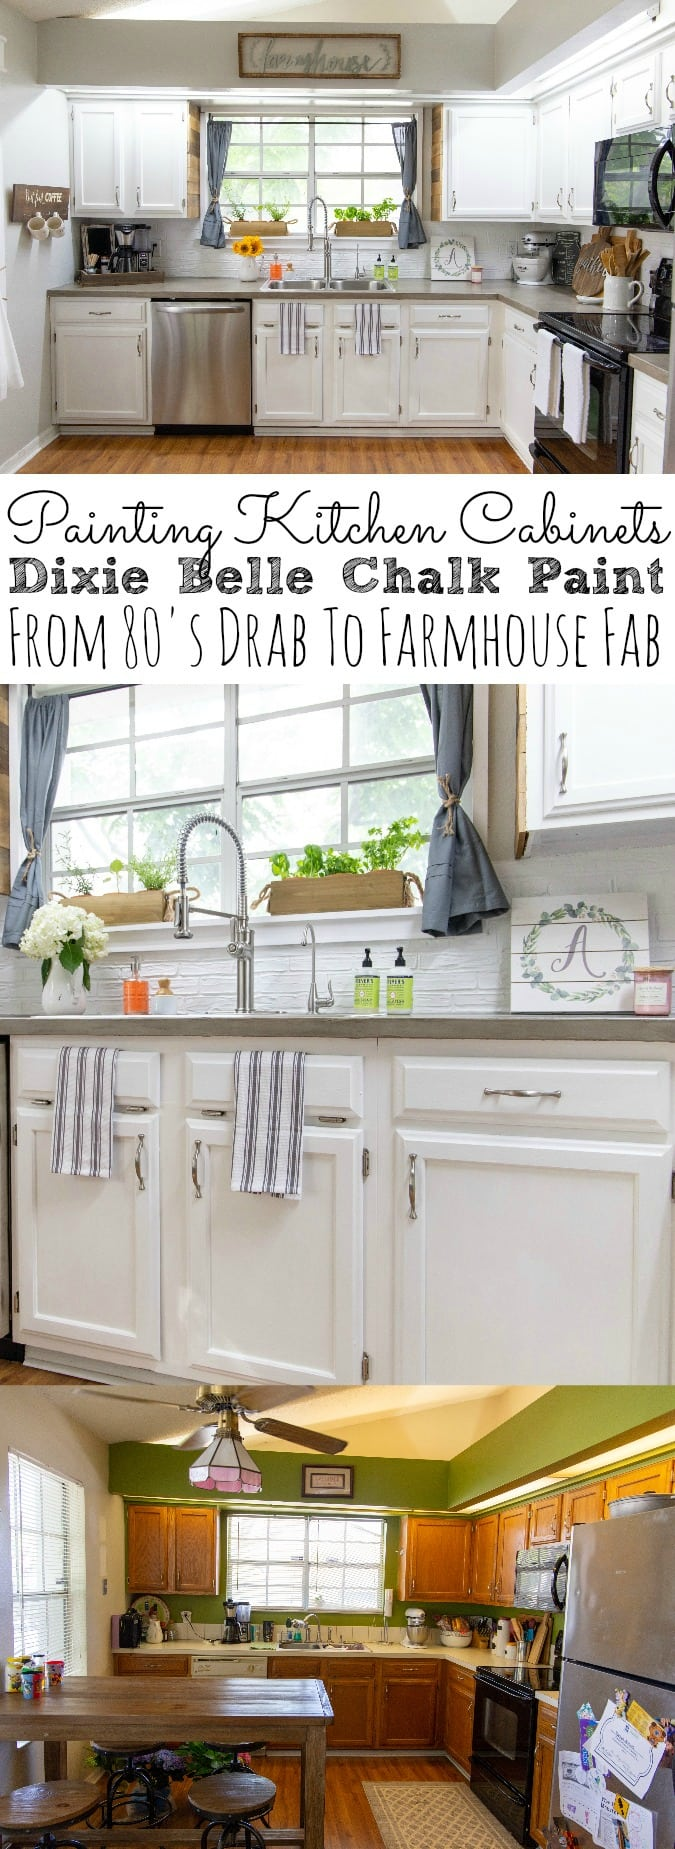 Painting Kitchen Cabinets With Chalk Paint From Dixie Belle | From 80's Drab To Farmhouse Fab - simplytodaylife.com.jpg